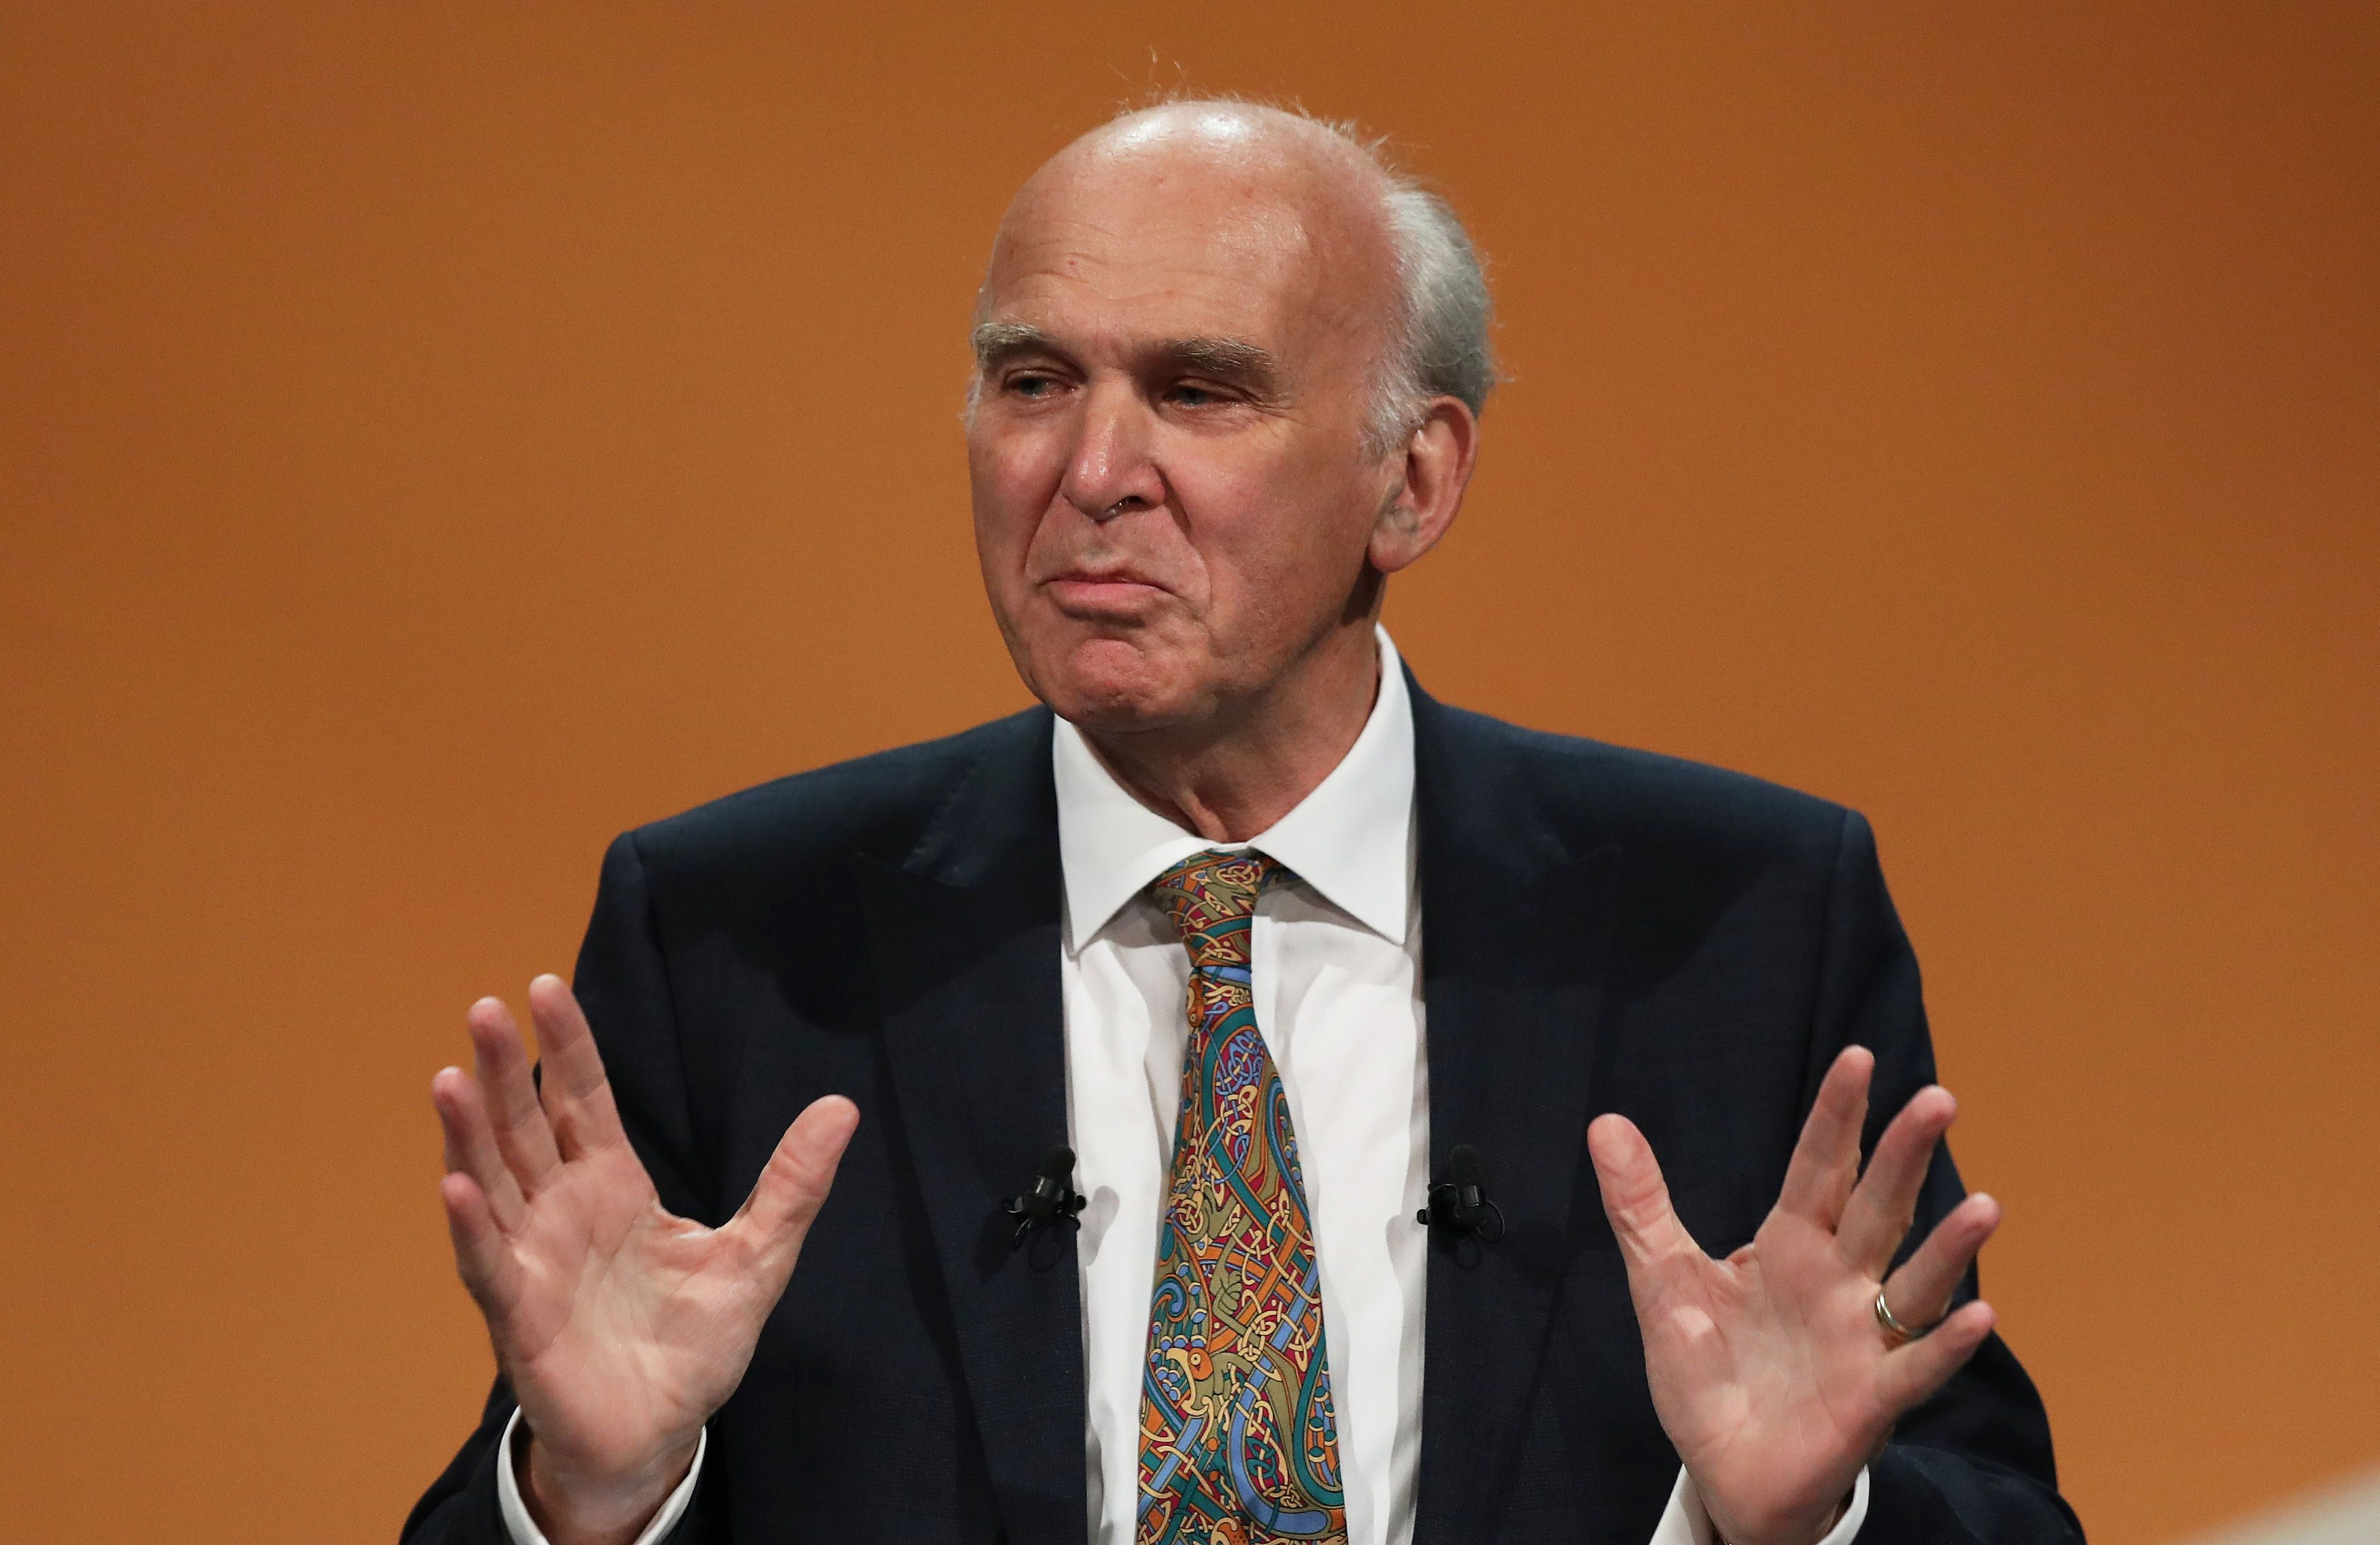 Sainsbury's And Asda Merger 'Must Be Investigated' By Competition Watchdog, Vince Cable